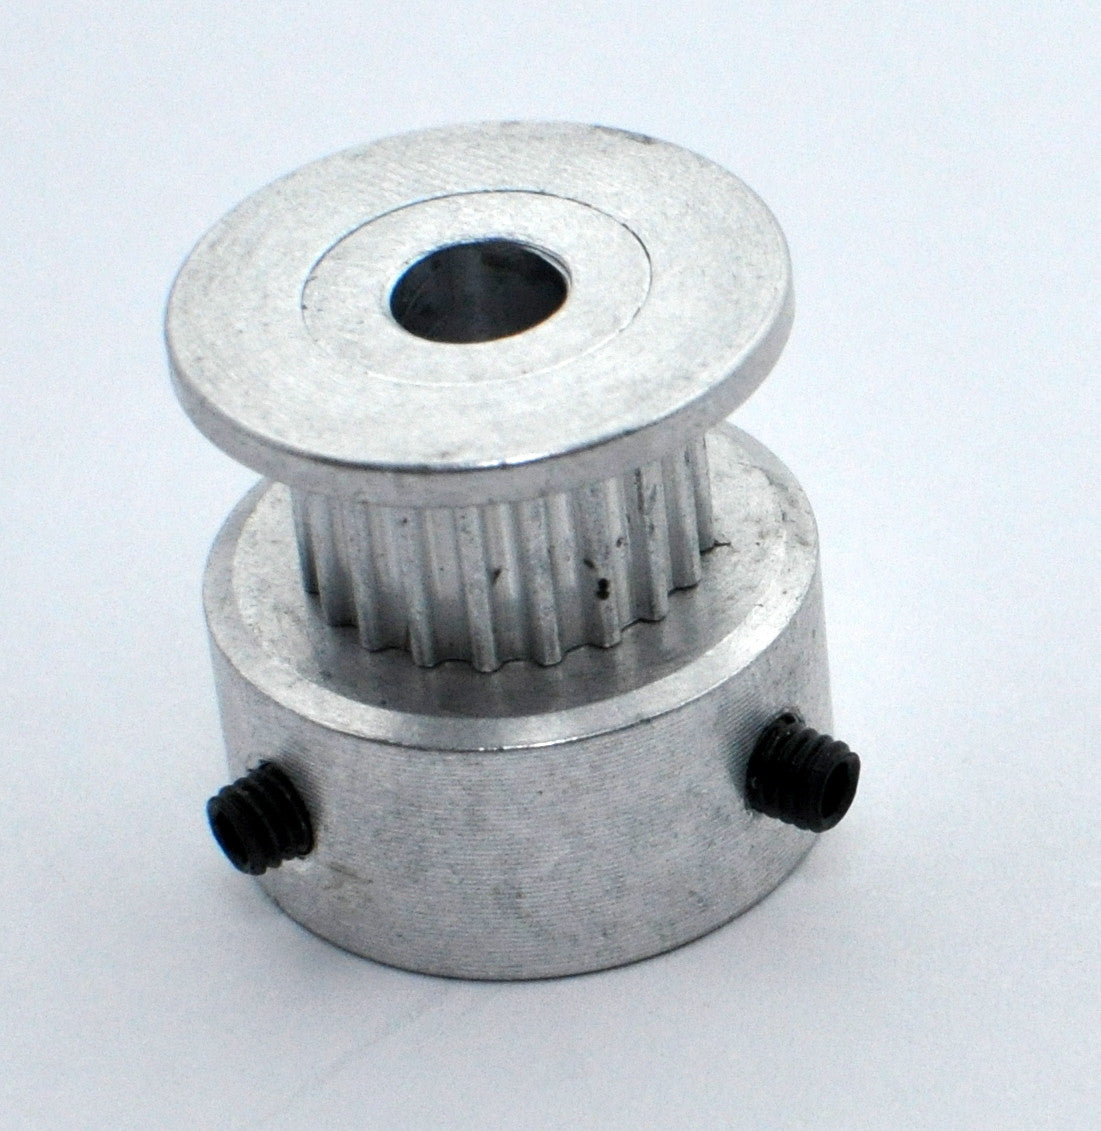 GT2 Pulley (including screws)